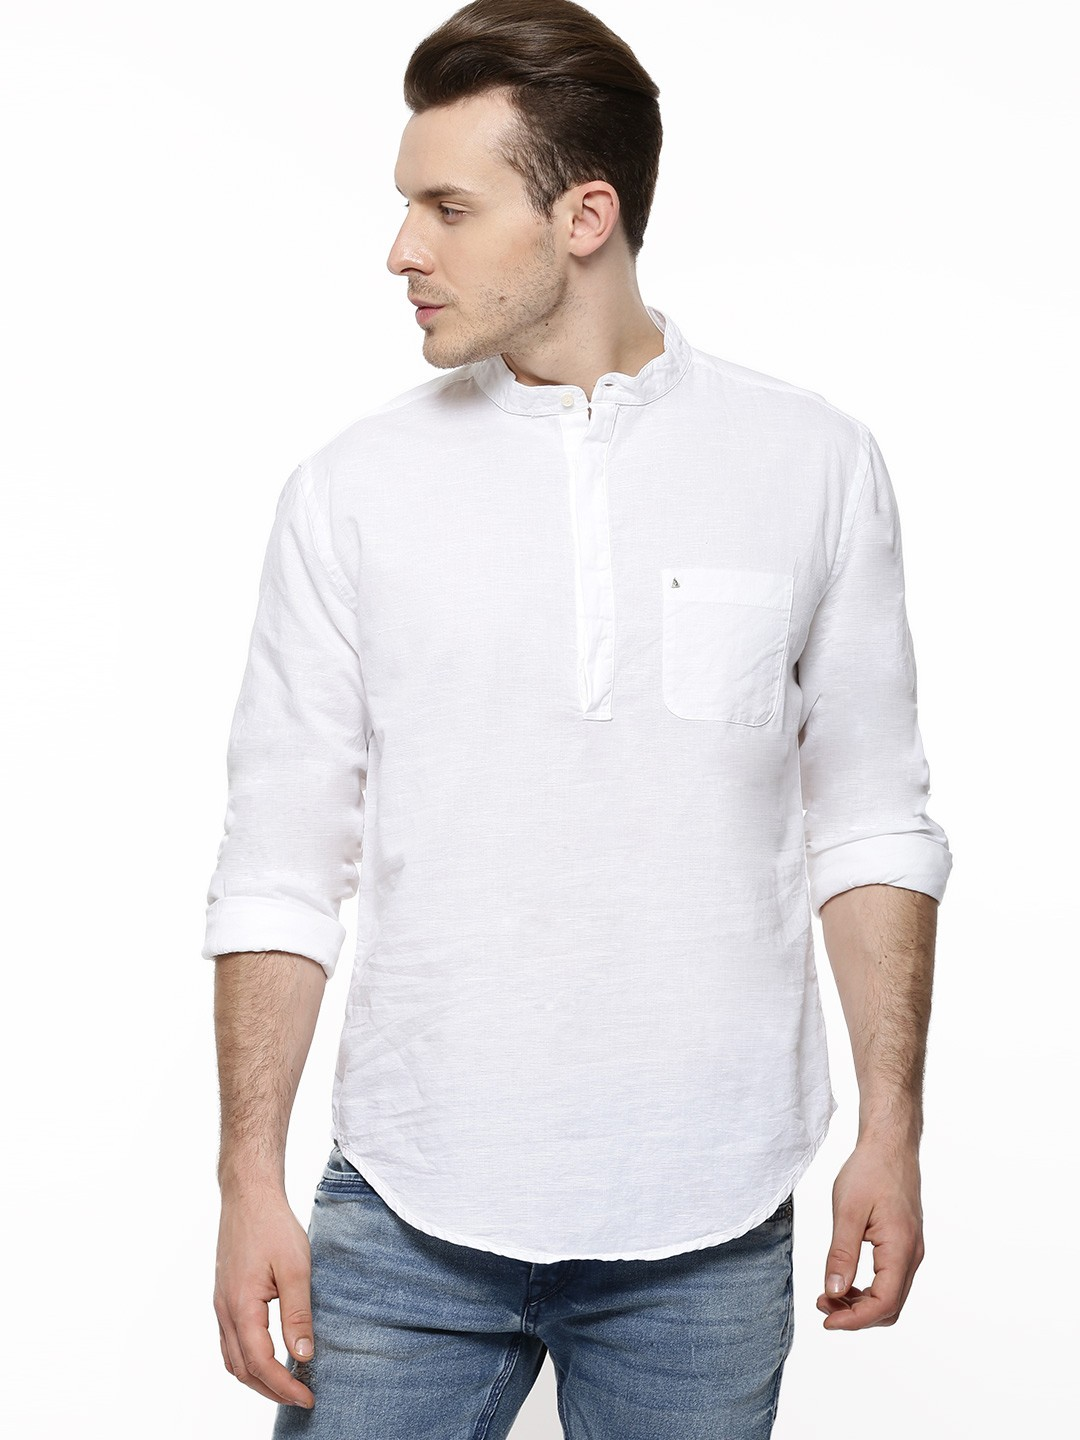 Free shipping on Men's button-up and dress shirts, non-iron, casual, flannel and plaid shirts for men. Free shipping and returns on men's shirts at bloggeri.tk